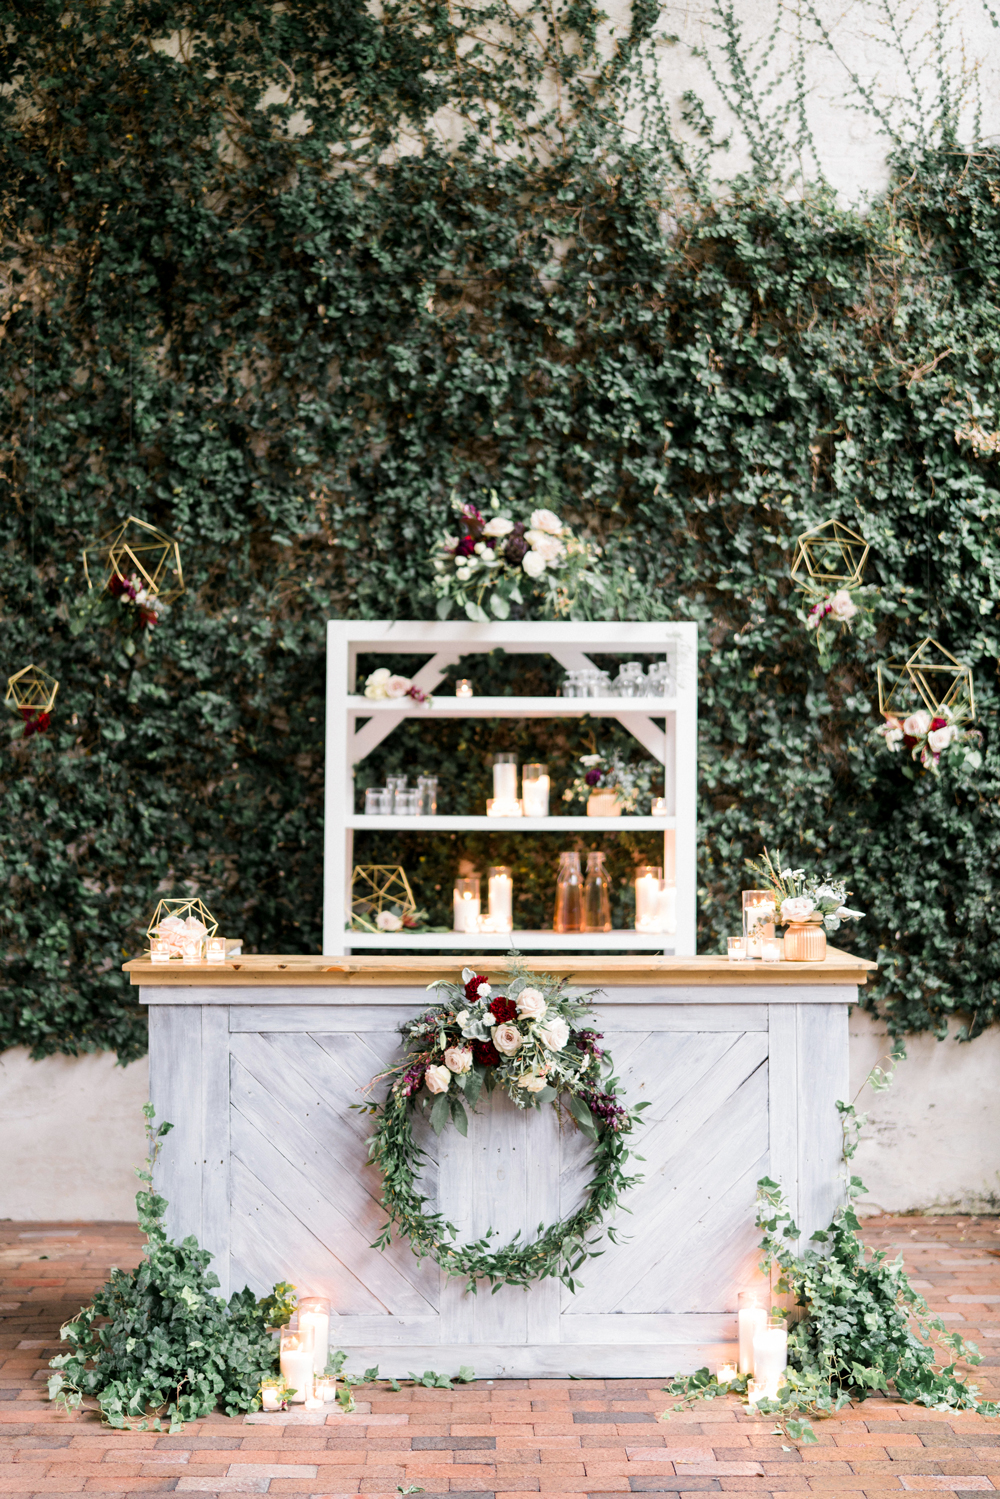 wedding wreaths decorating outdoor bar